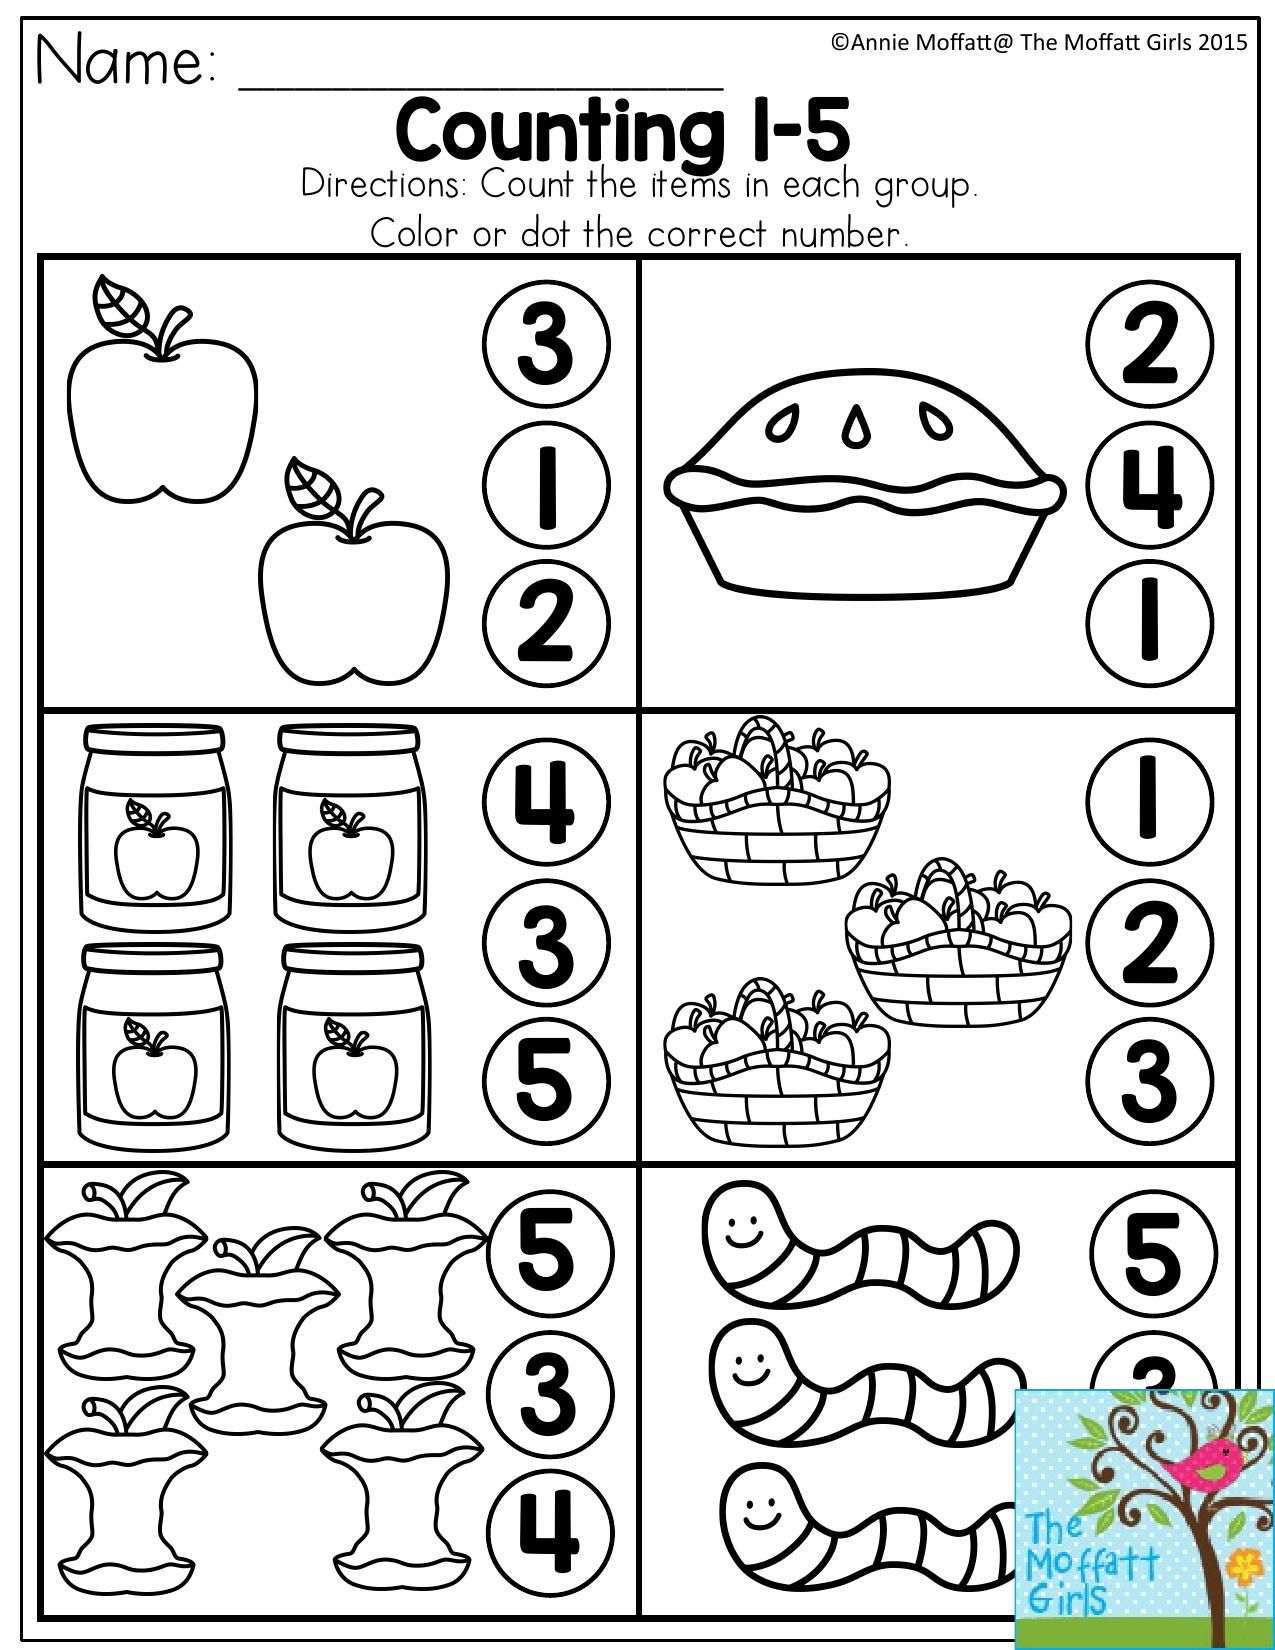 Counting 1-5. Count The Items In Each Group And Dot Or Color